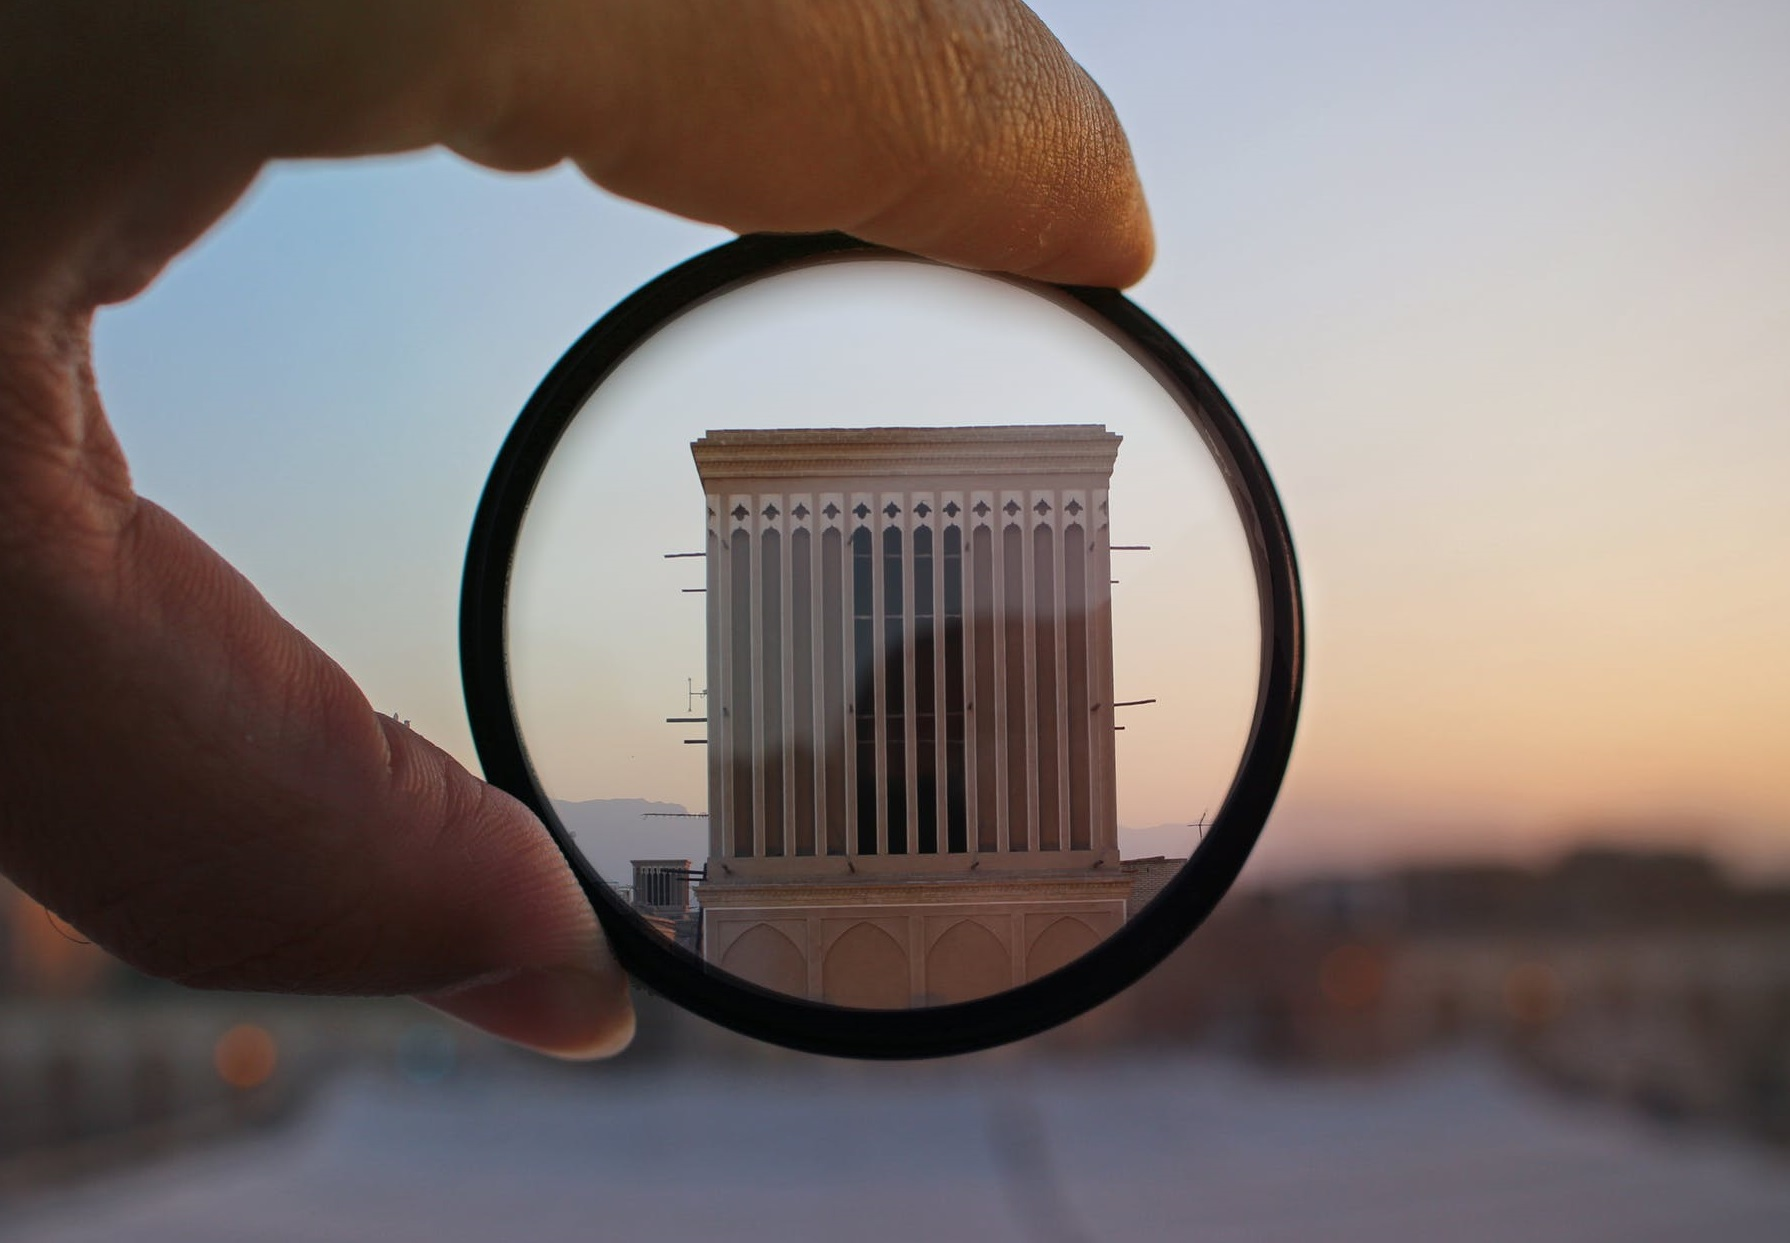 Examining a building through a lense